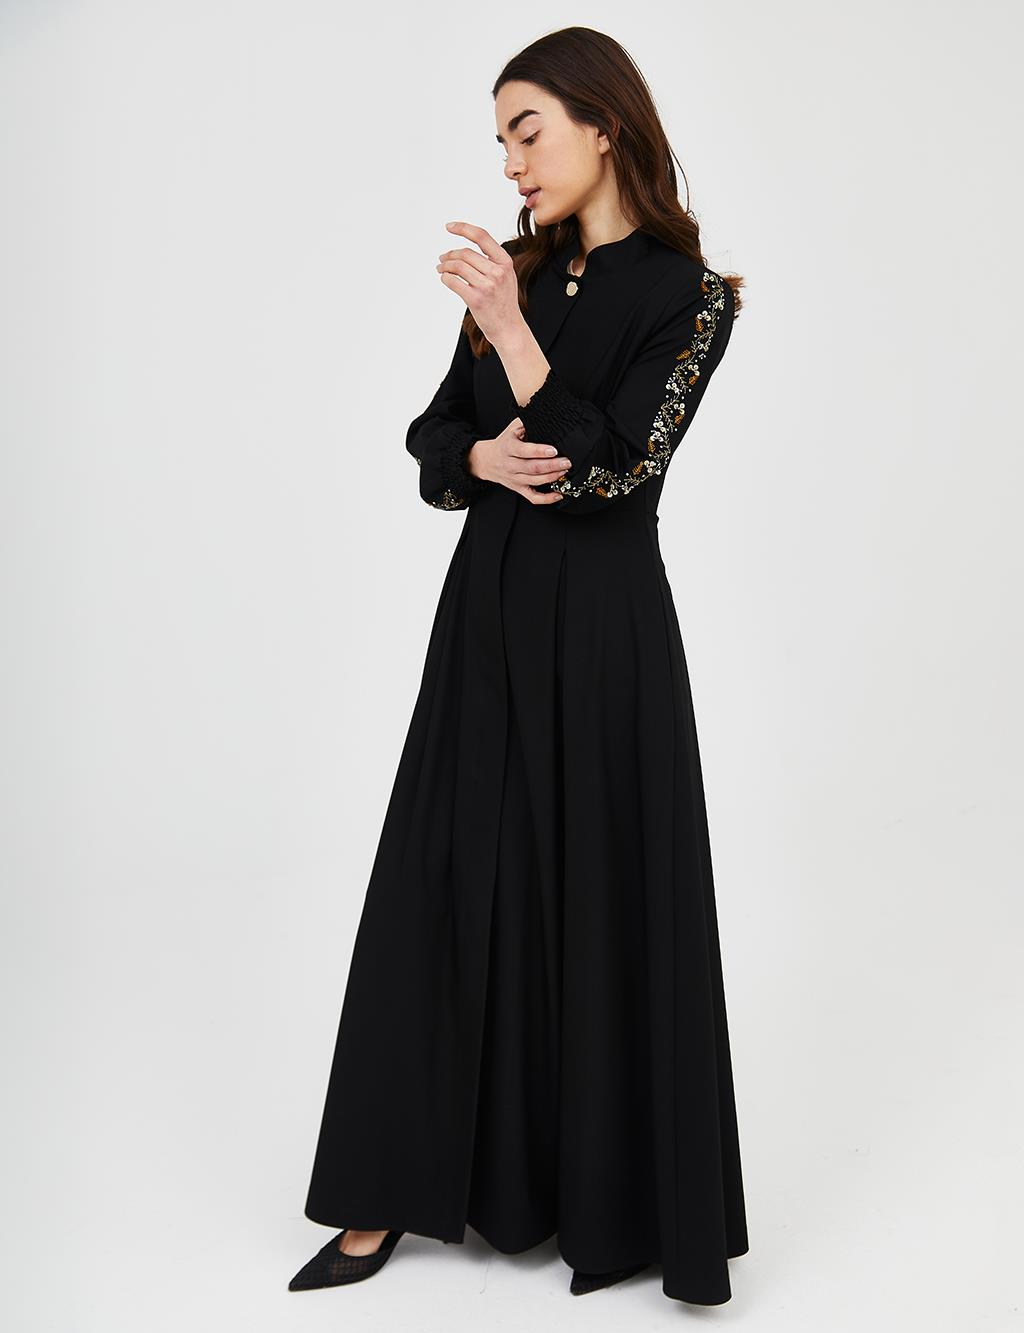 Embroidered Long Topcoat B21 15007 Black